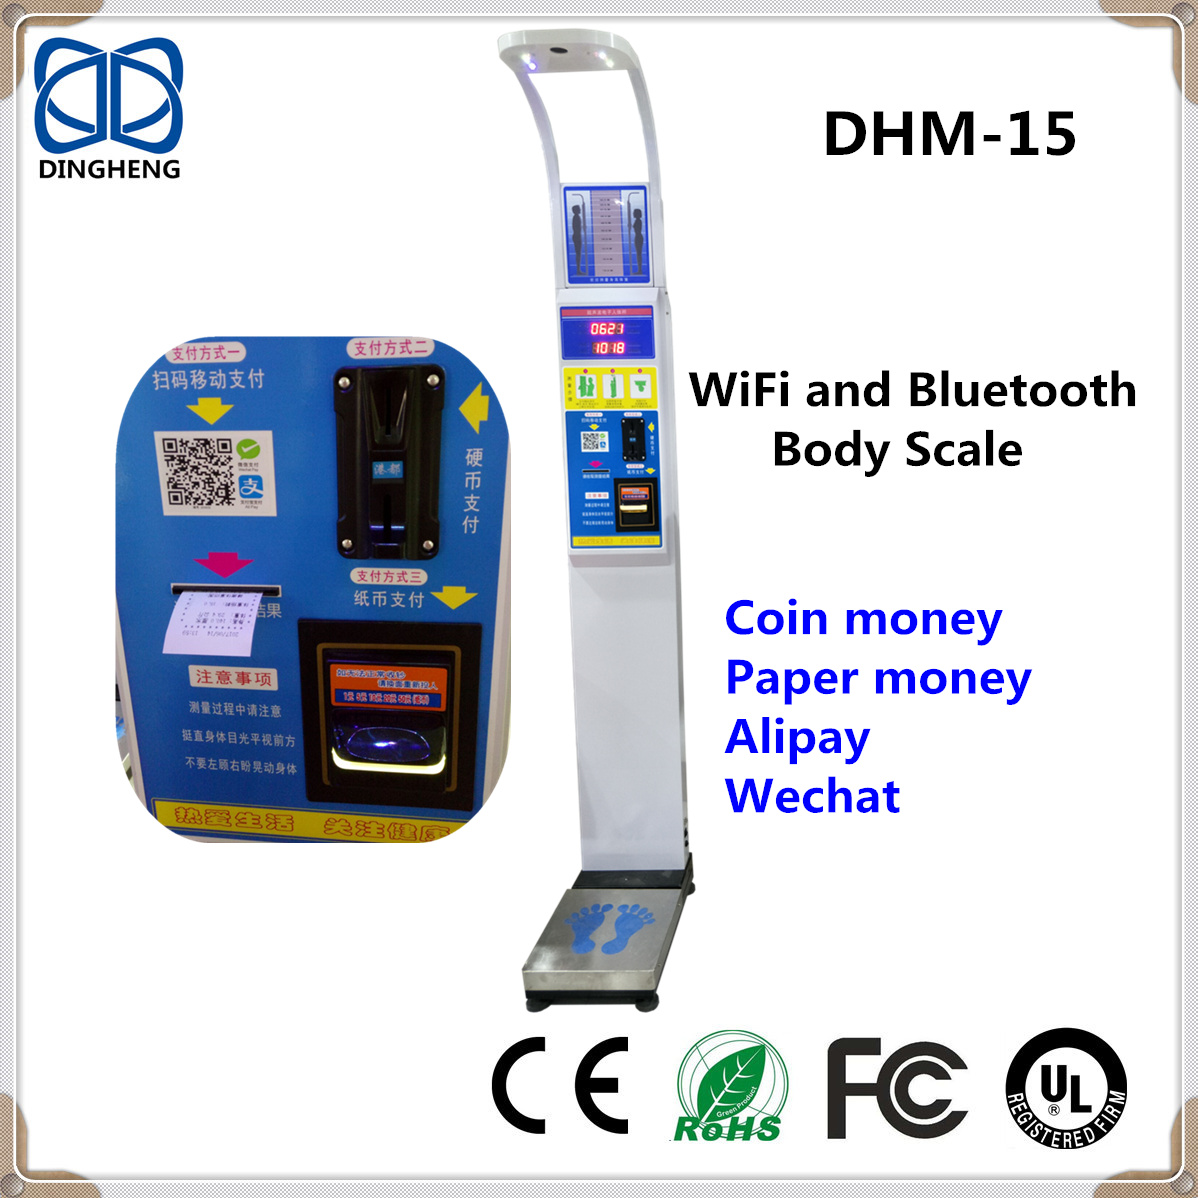 DHM-15 New Design Alipay WiFi and Bluetooth Body Scale height and weighing machines